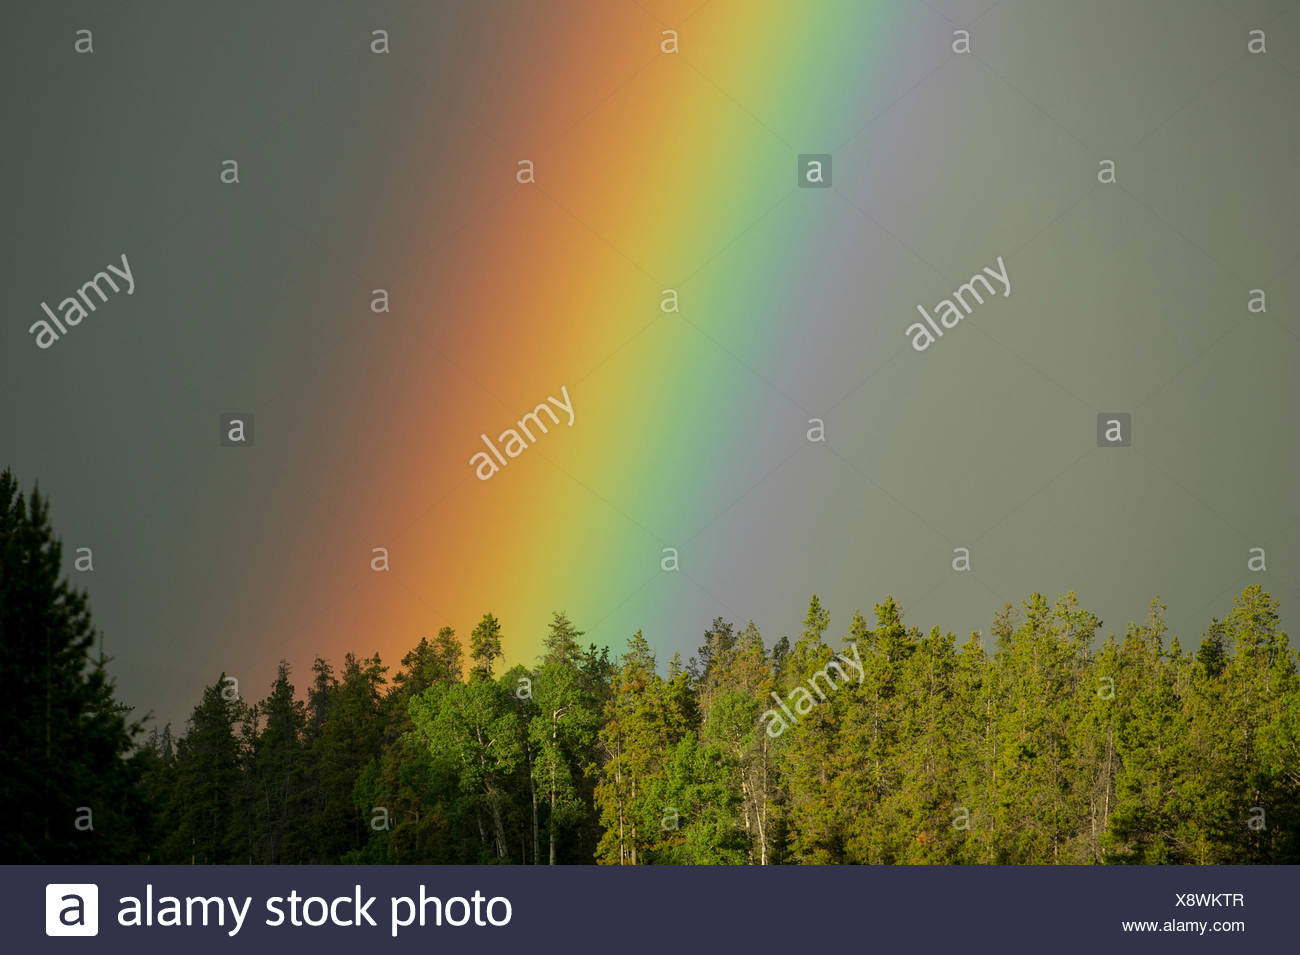 A vibrant rainbow shines above the forest. - Stock Image